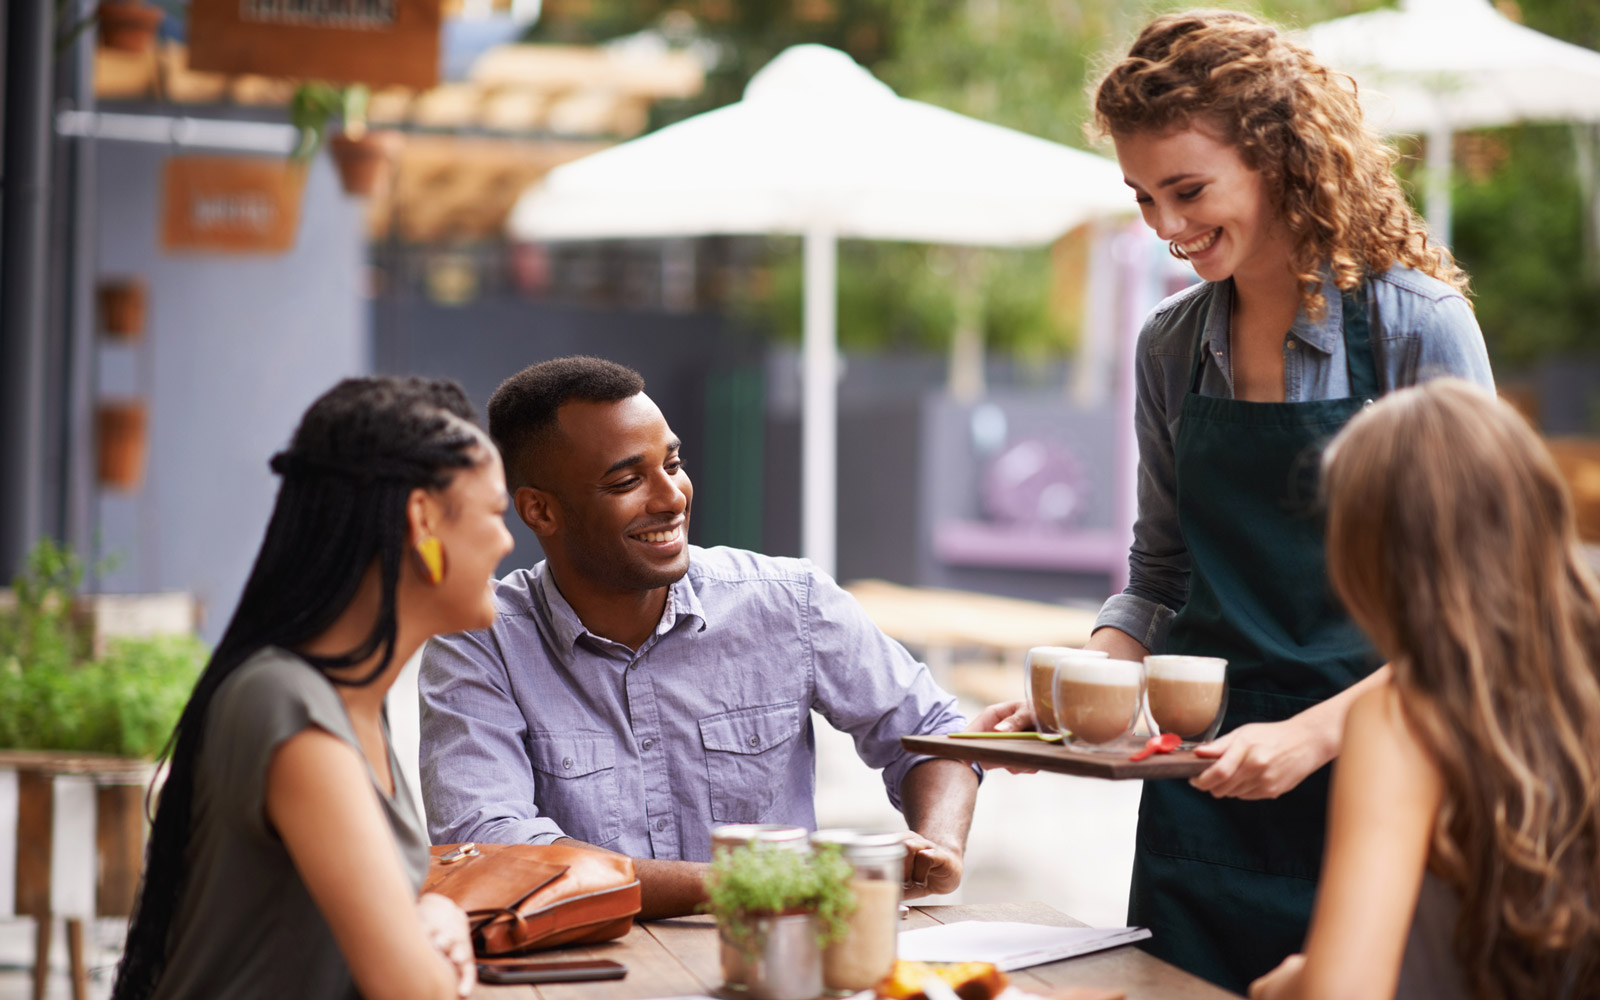 Cropped shot of a waitress serving her customers at a coffee shop